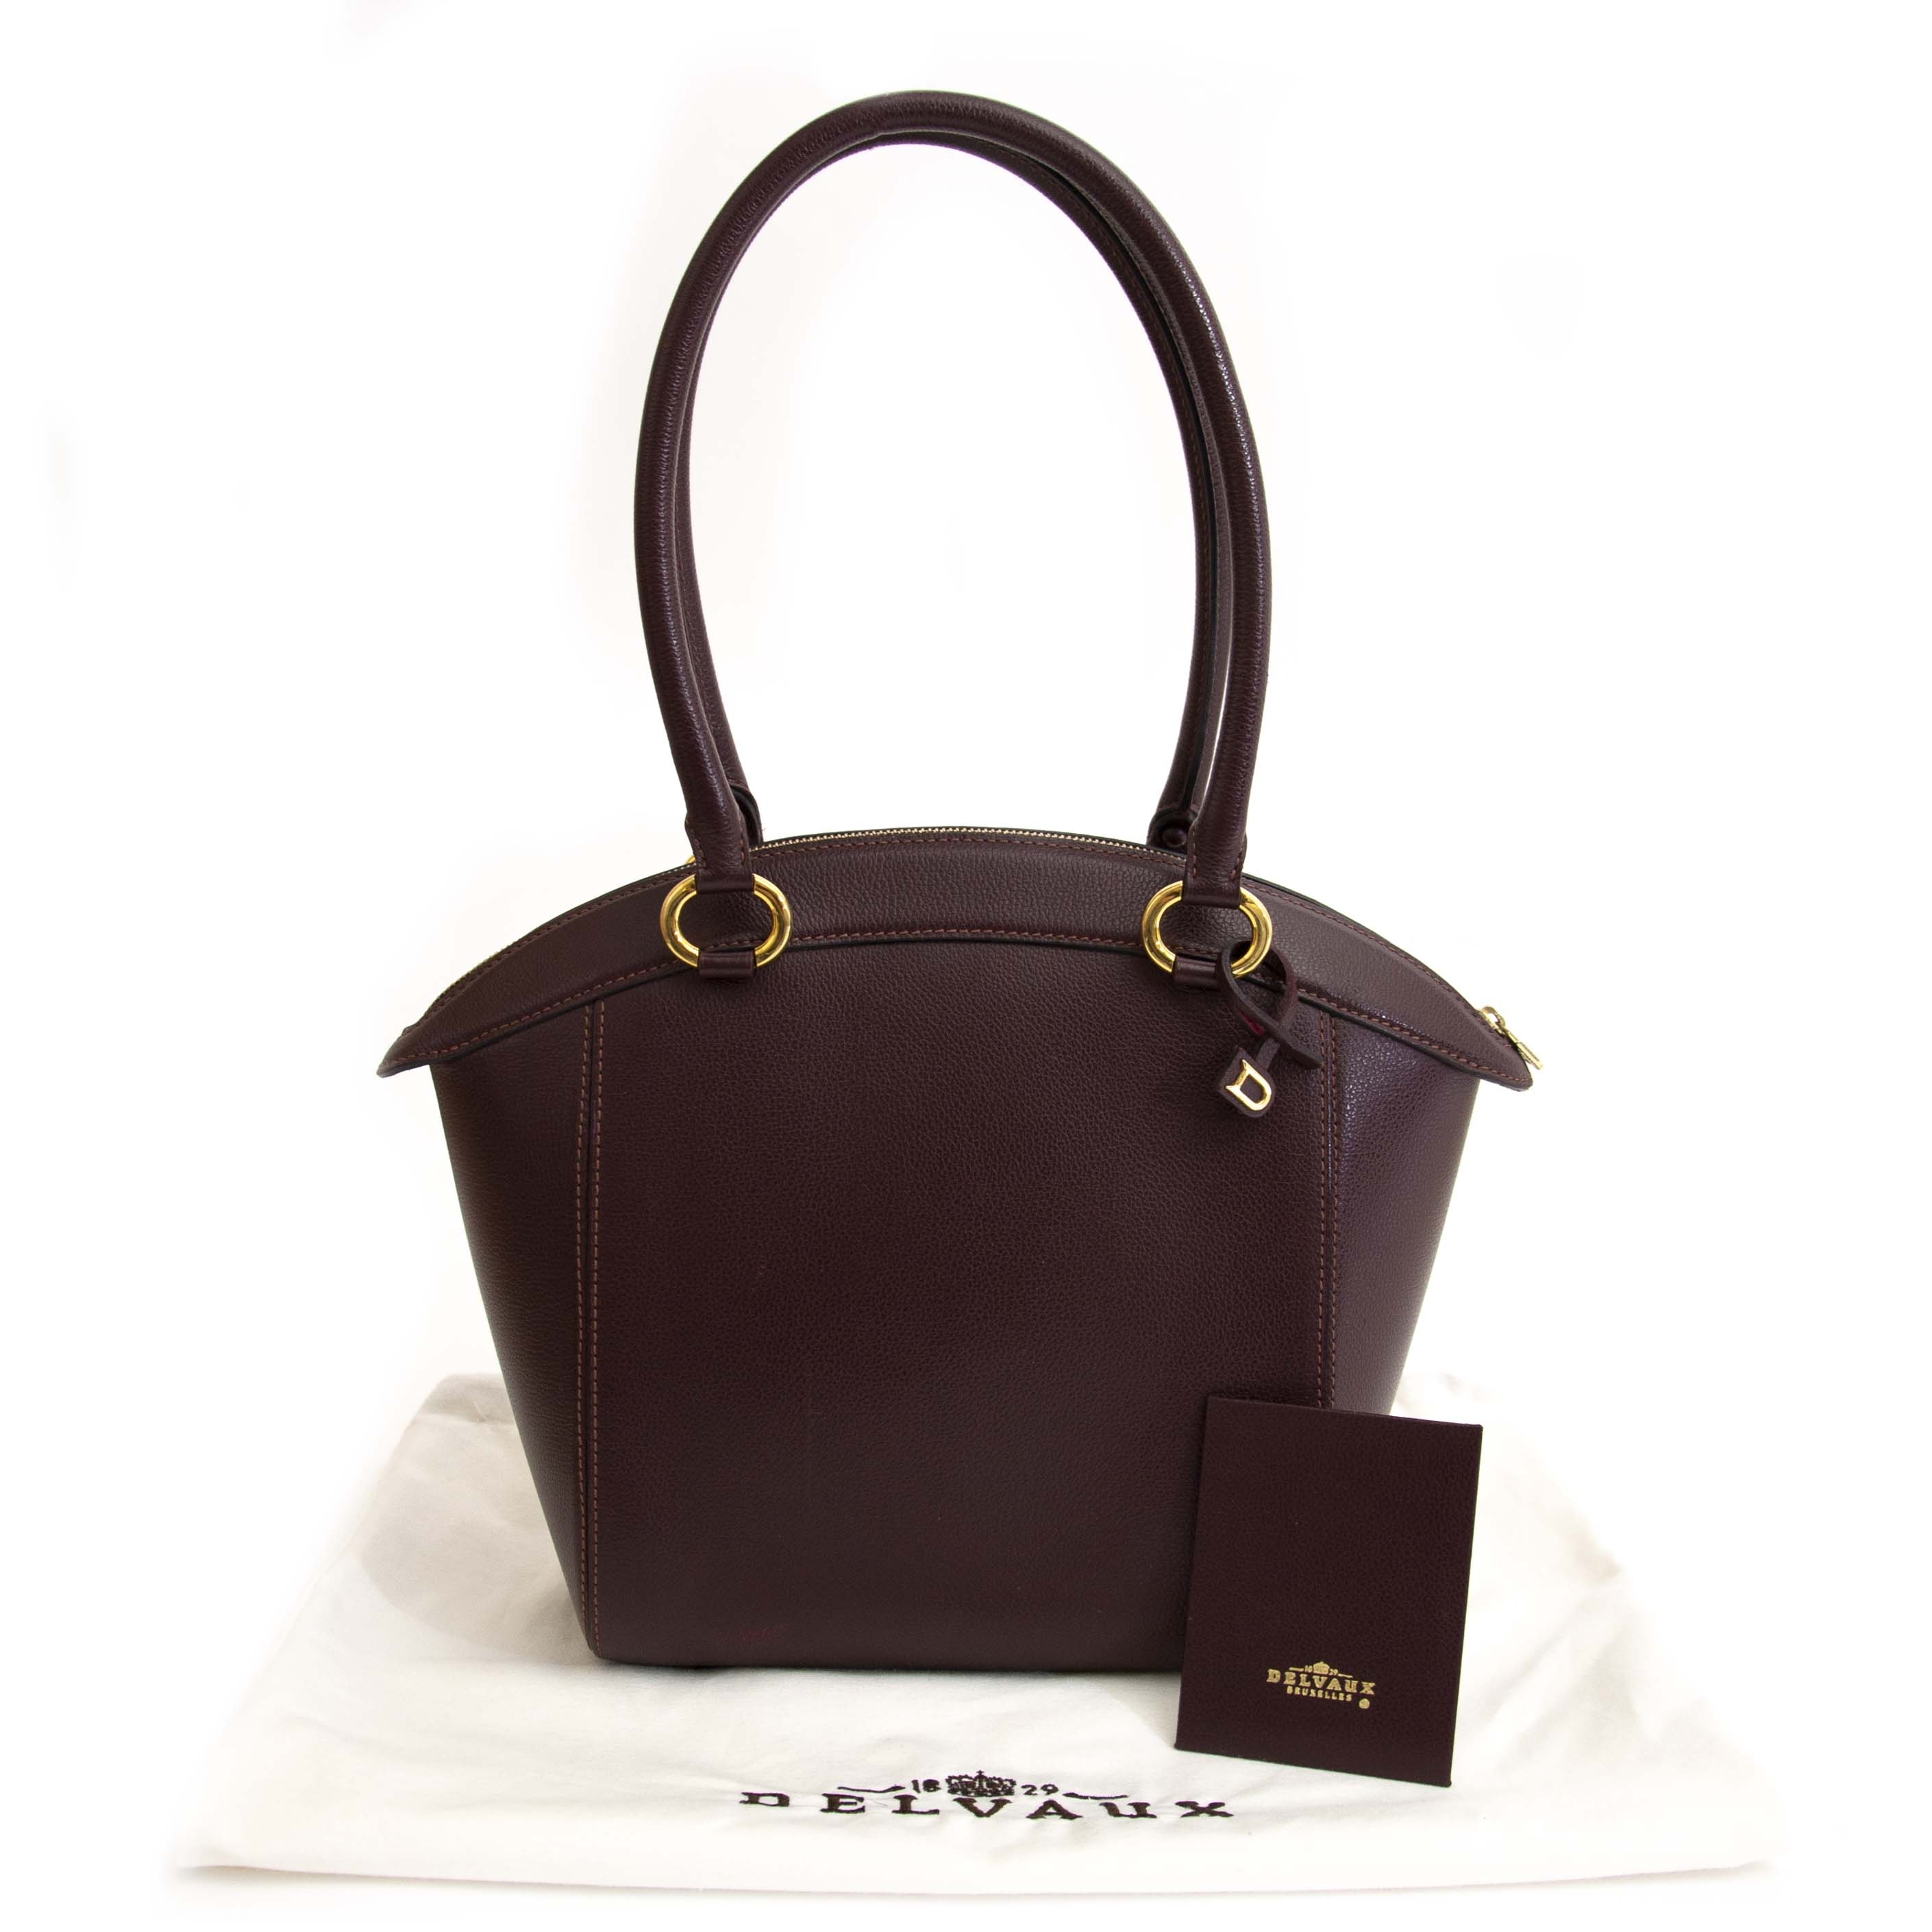 Delvaux Charme Burgundy Top Handle